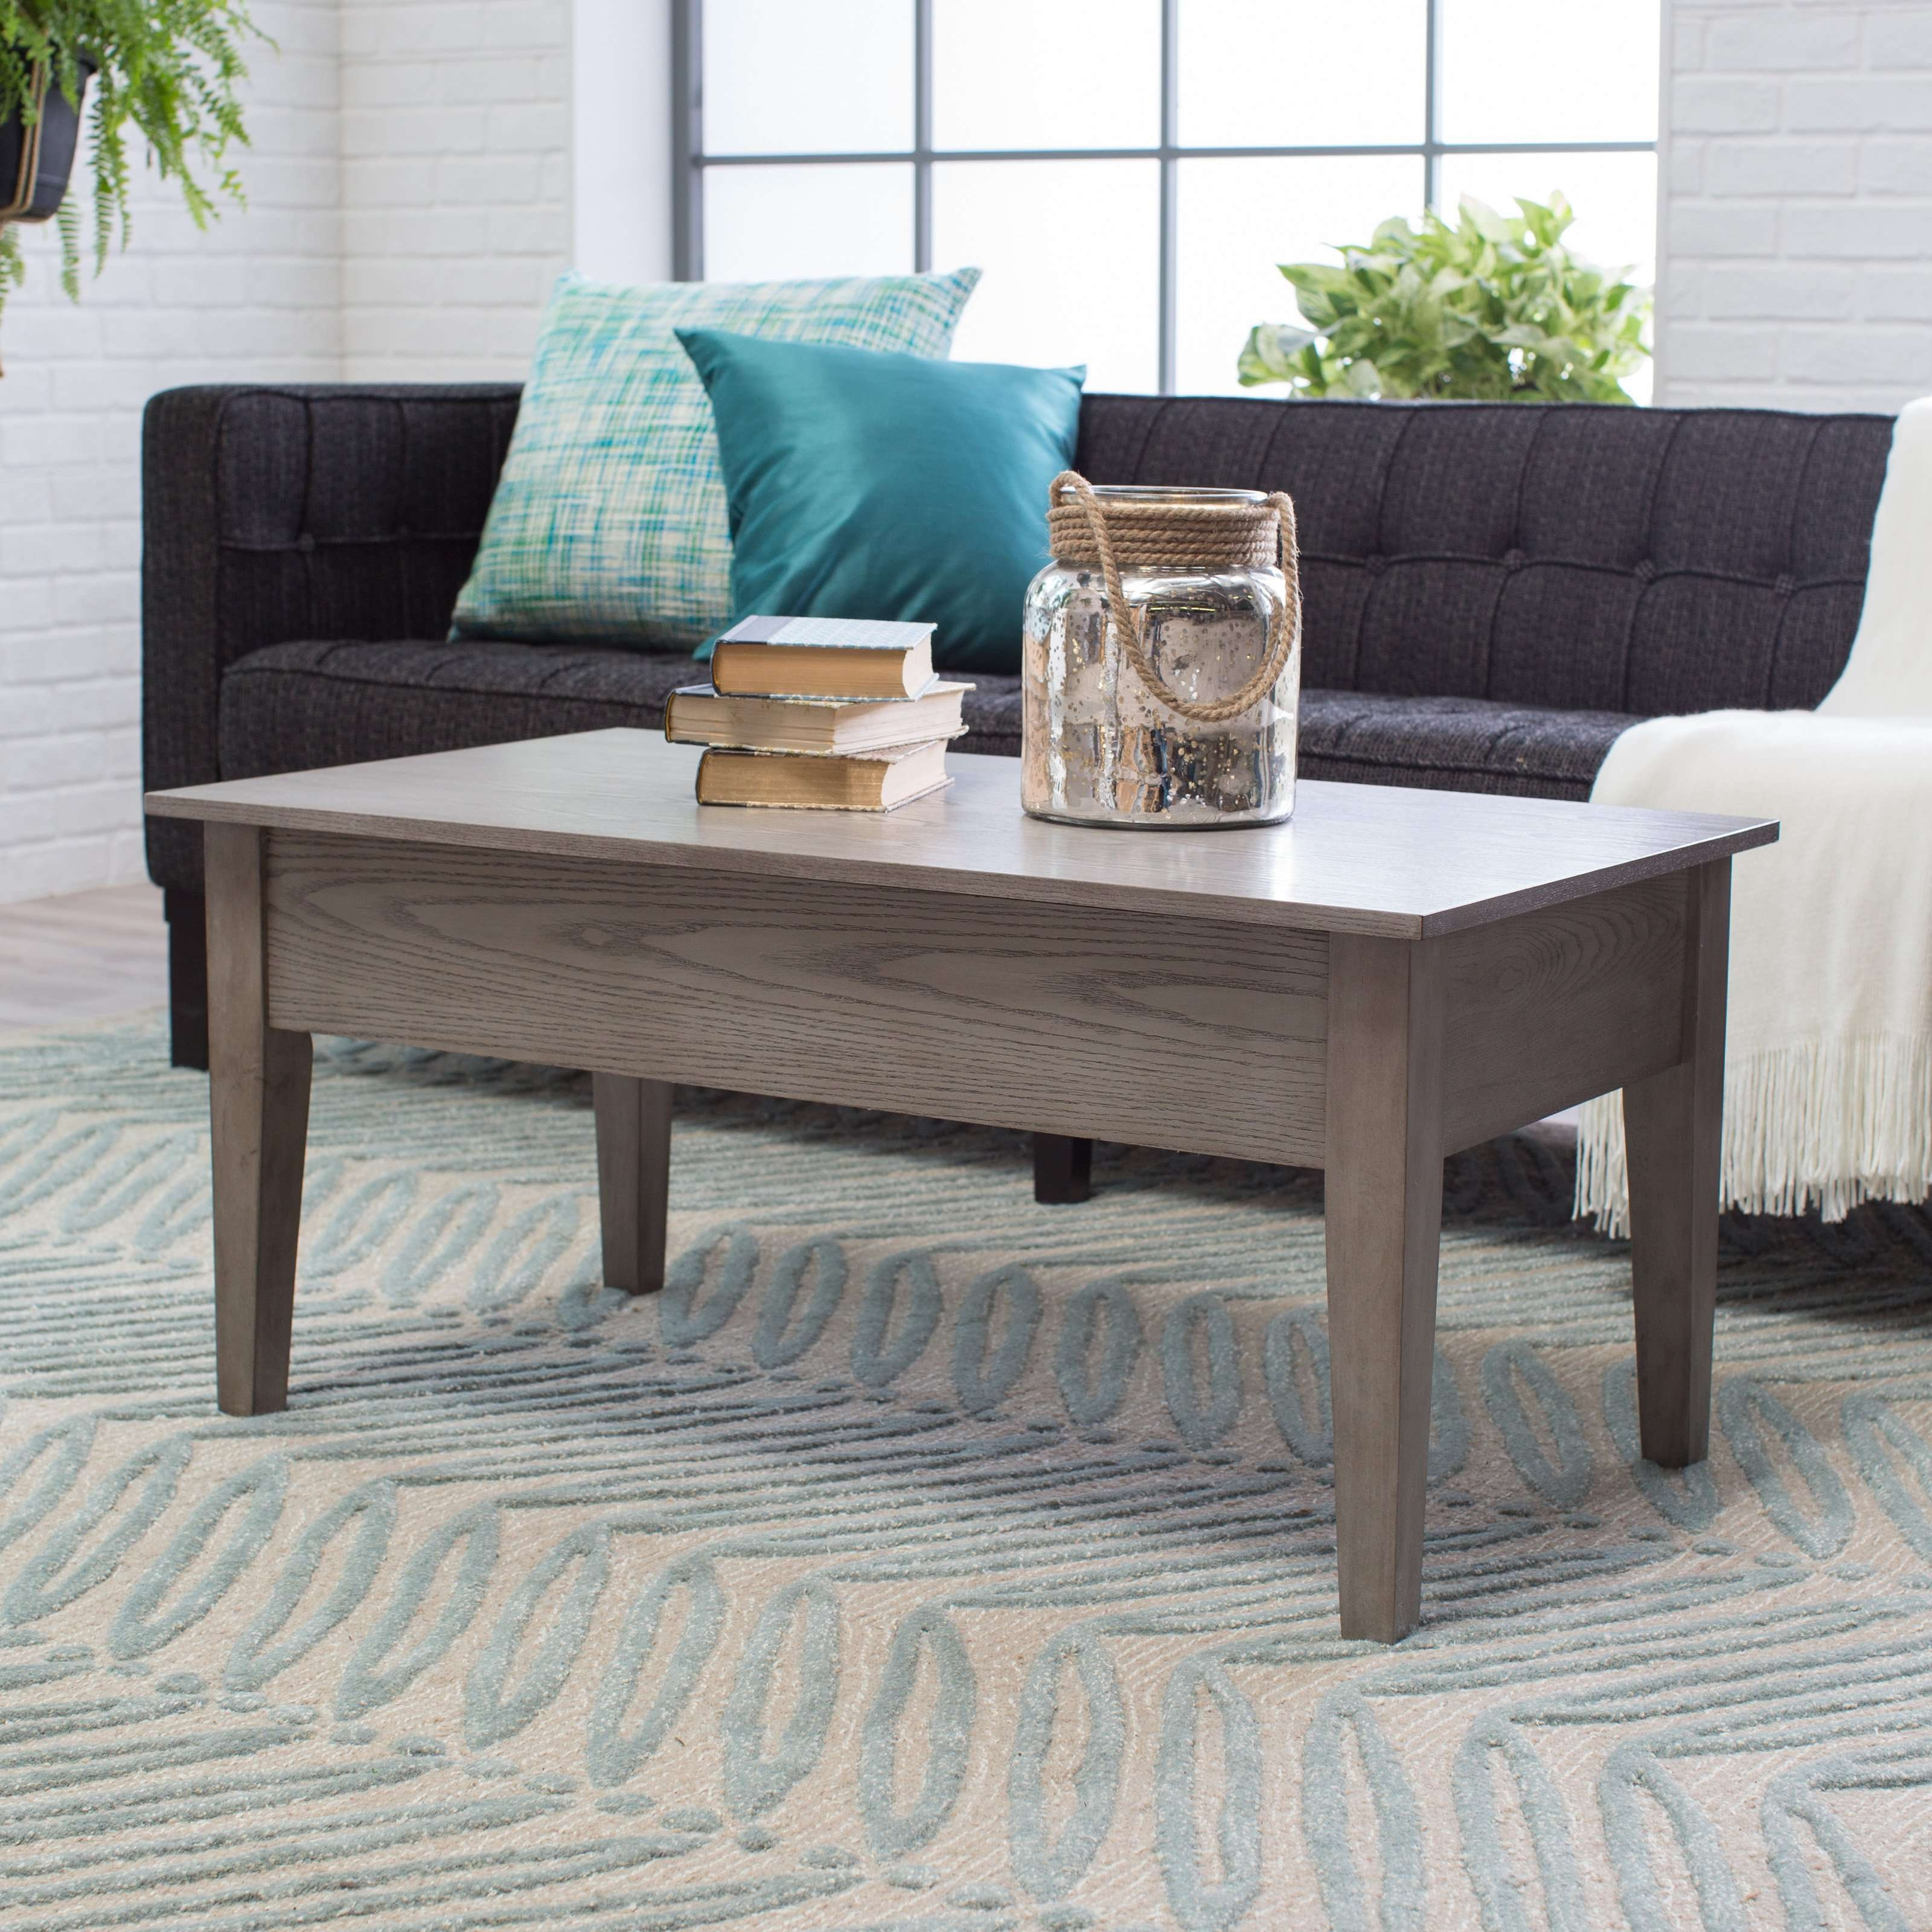 Hayneedle With Regard To Famous Gray Wood Coffee Tables (Gallery 3 of 20)